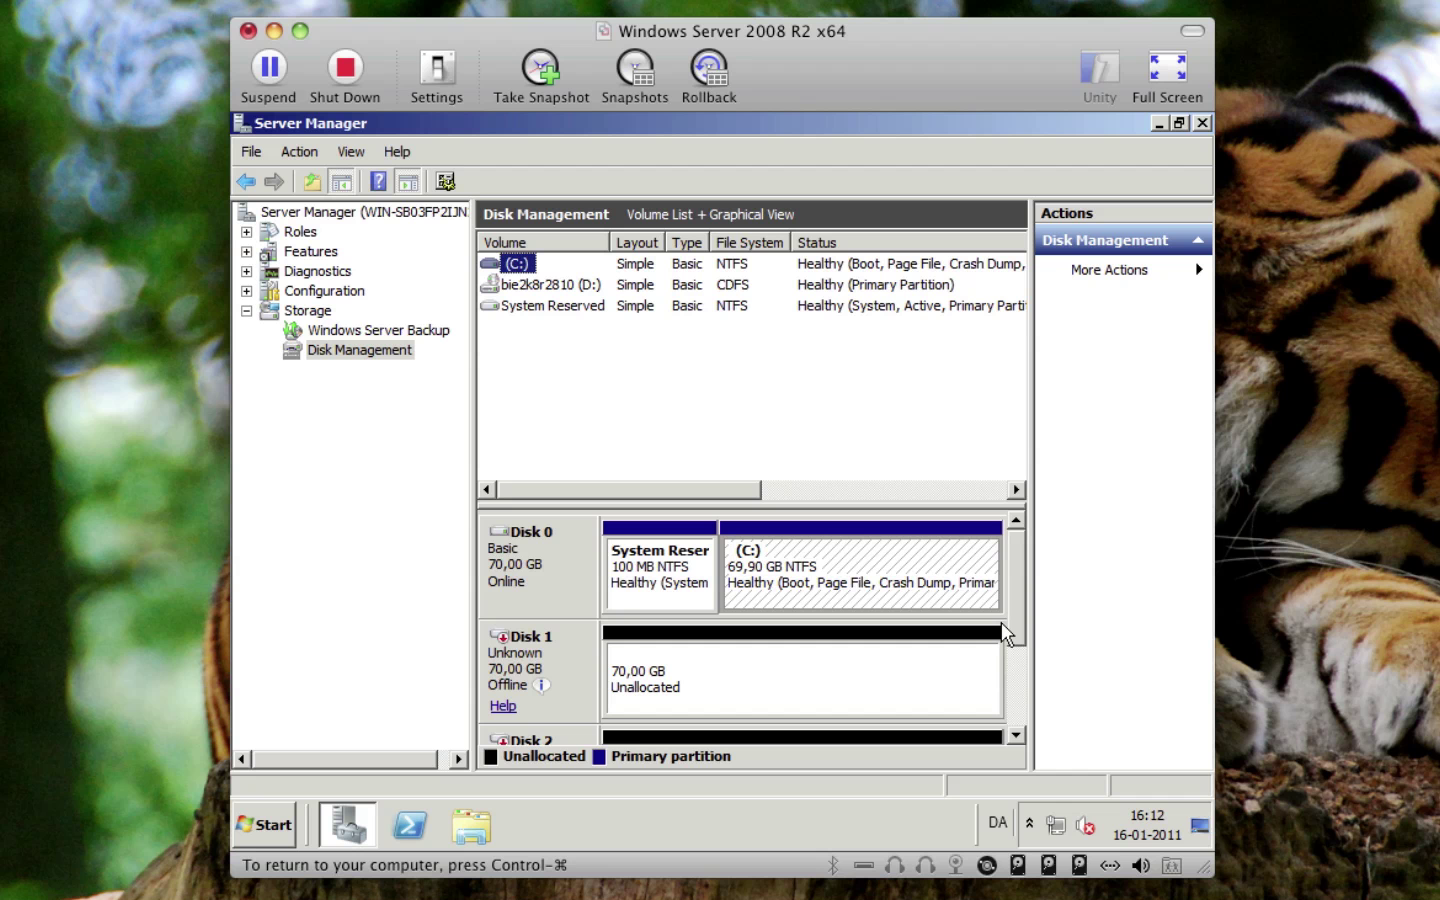 Windows Server 2008 - Windows Server Backup